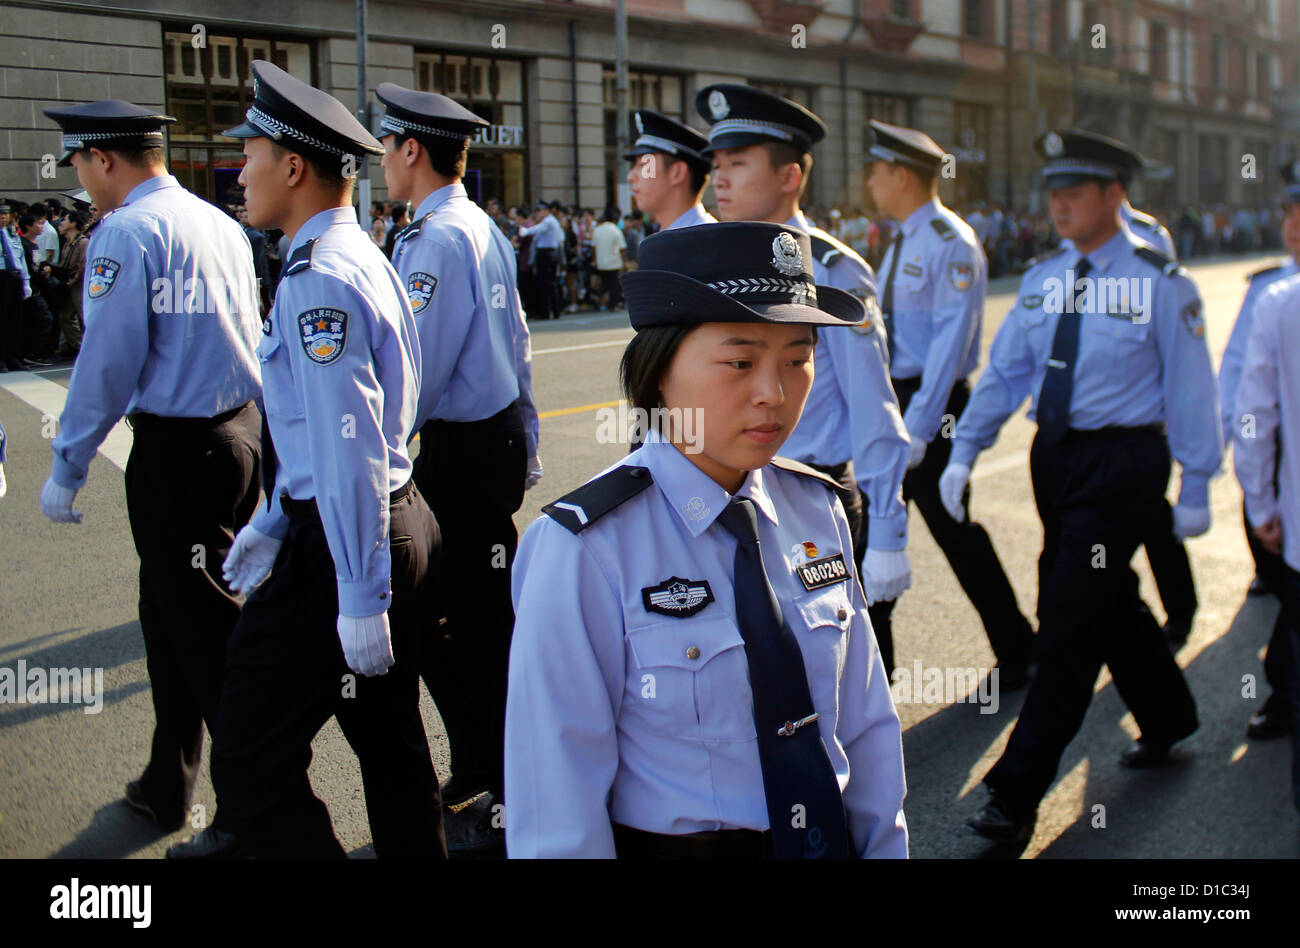 Chinese Police Officers Patrolling The Streets Of Shanghai During International Day China Stock